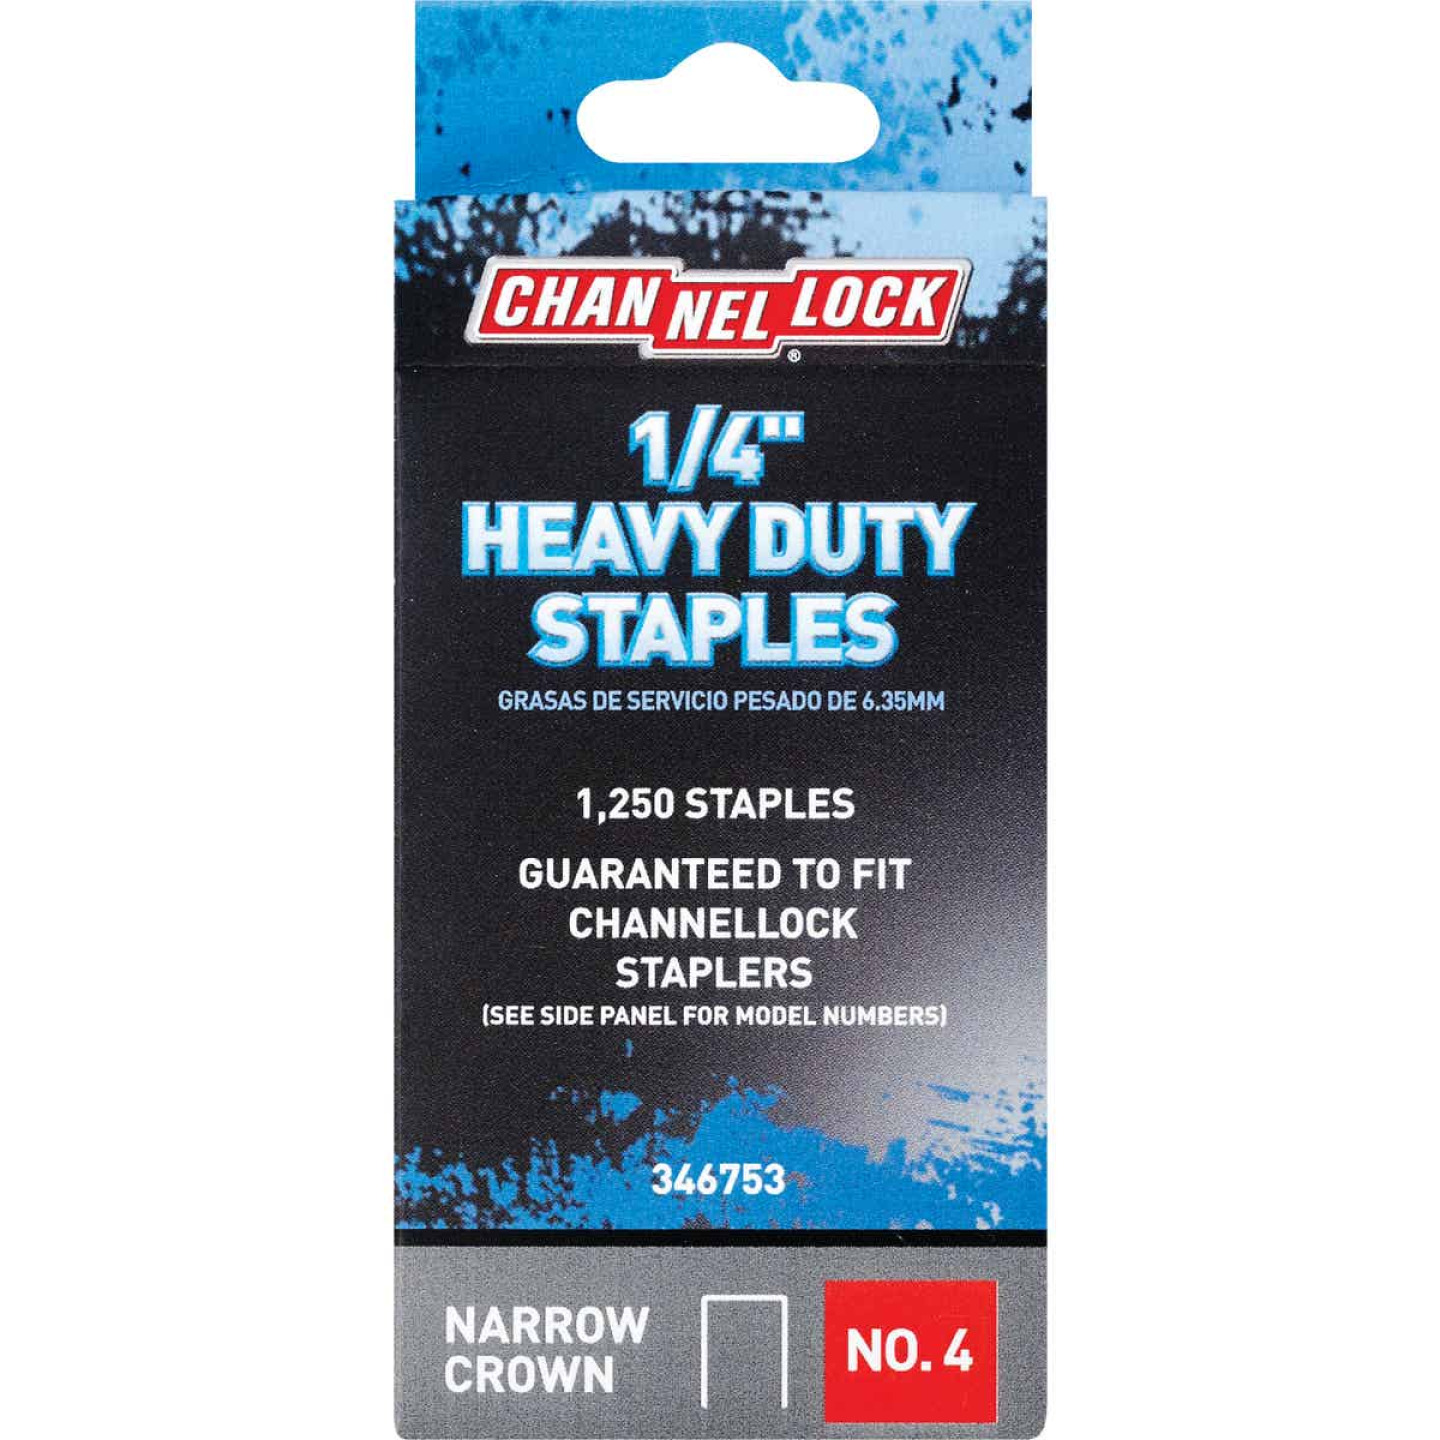 Channellock No. 4 Heavy-Duty Narrow Crown Staple, 1/4 In. (1250-Pack) Image 1